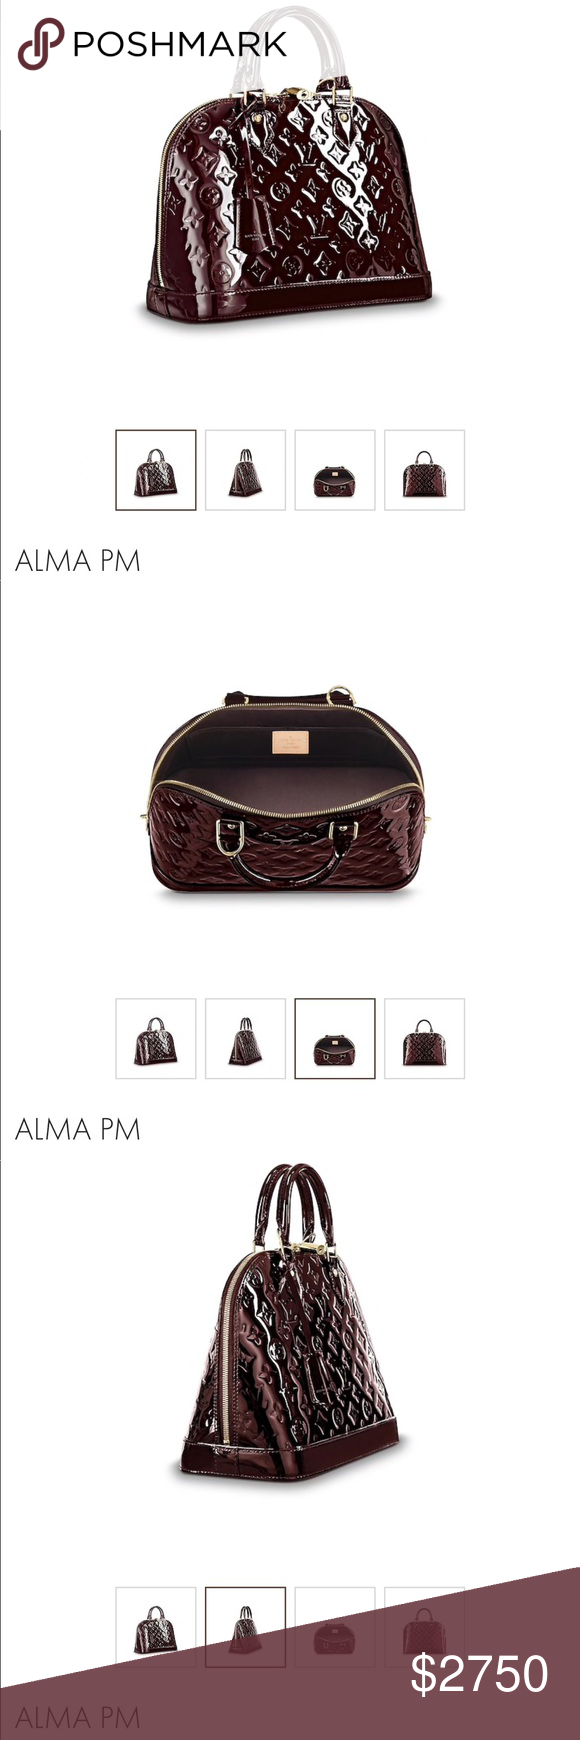 cb81b2715bfd Louis Vuitton Alma PM Patent Leather Griotte RARE Burgundy color patent  leather Color name is GRIOTTE